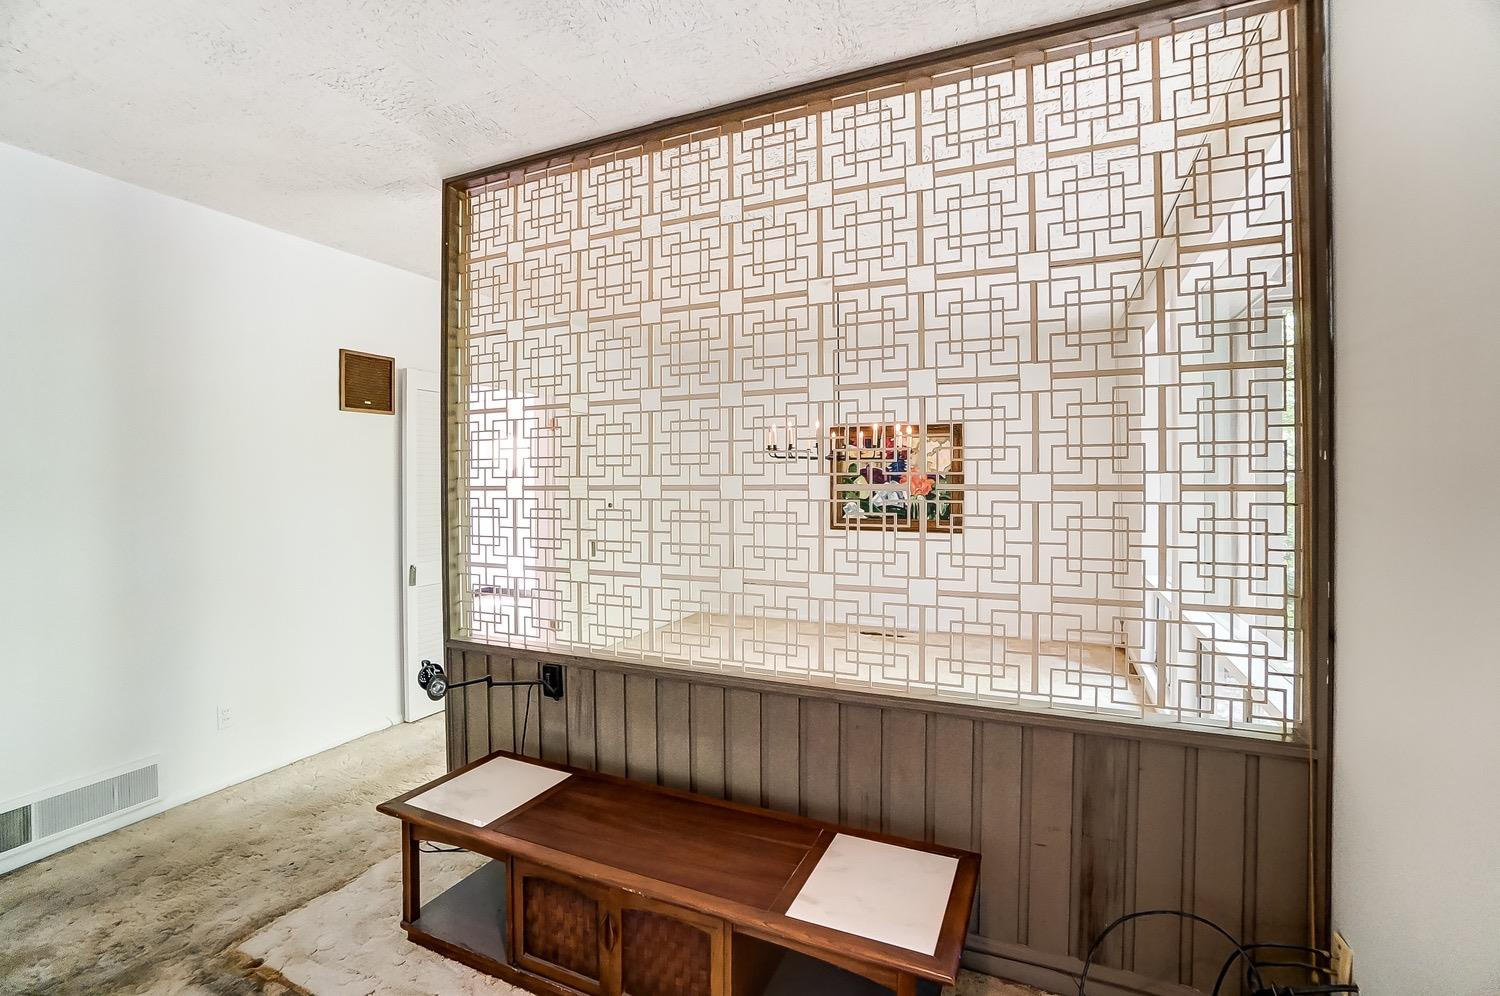 A screened partition wall separates the dining area.